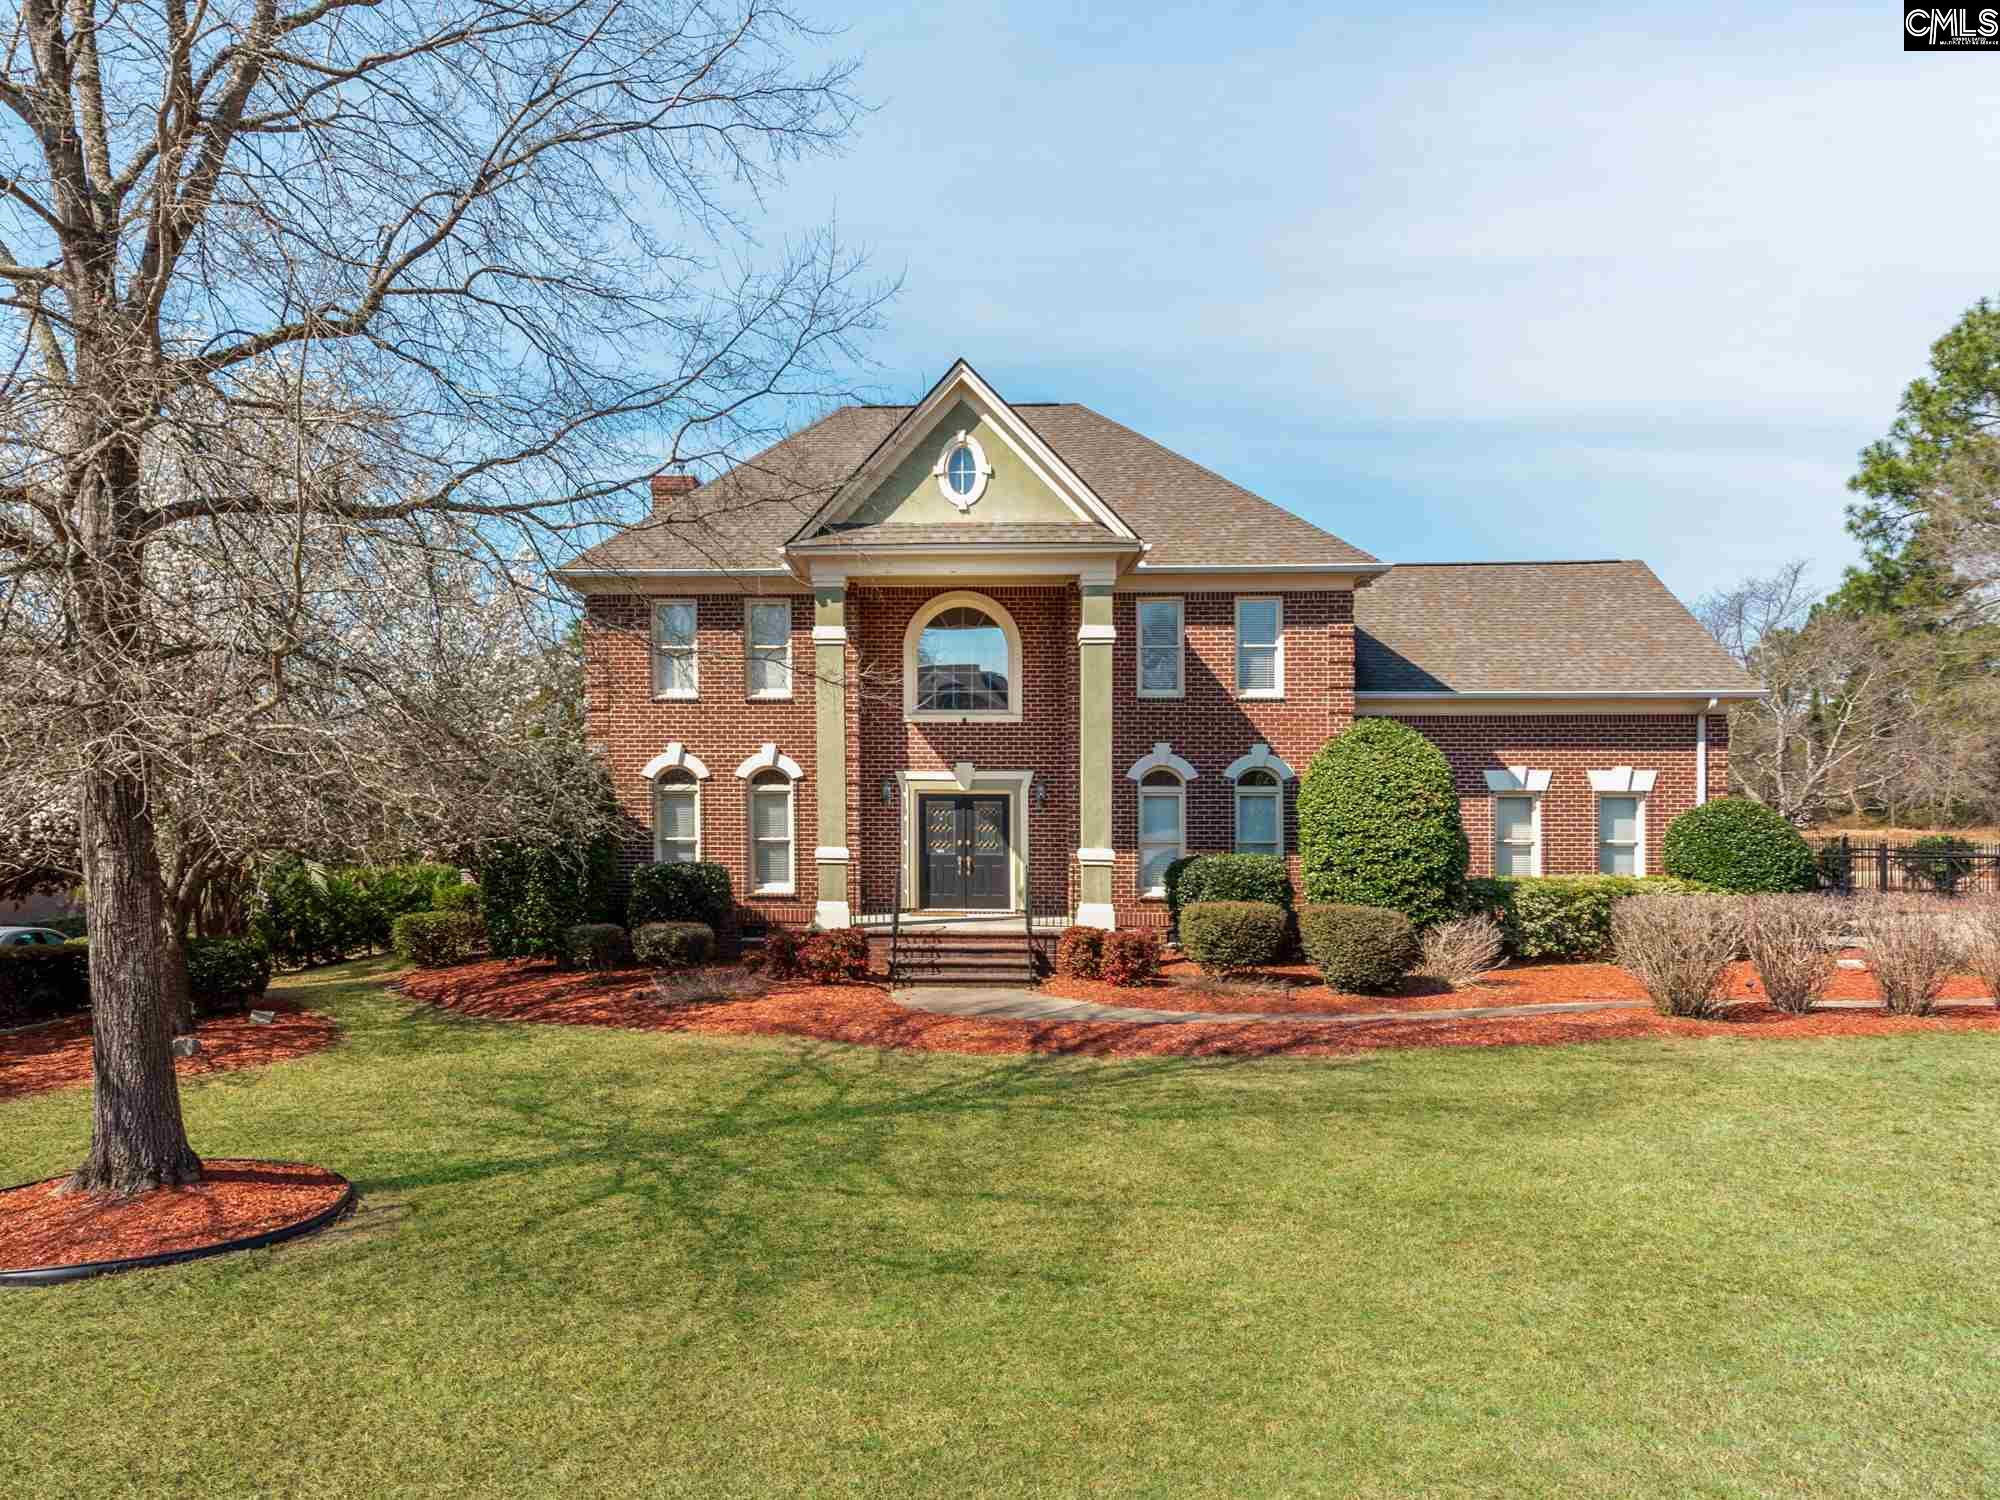 7 Whithorn Way Blythewood, SC 29016-9093